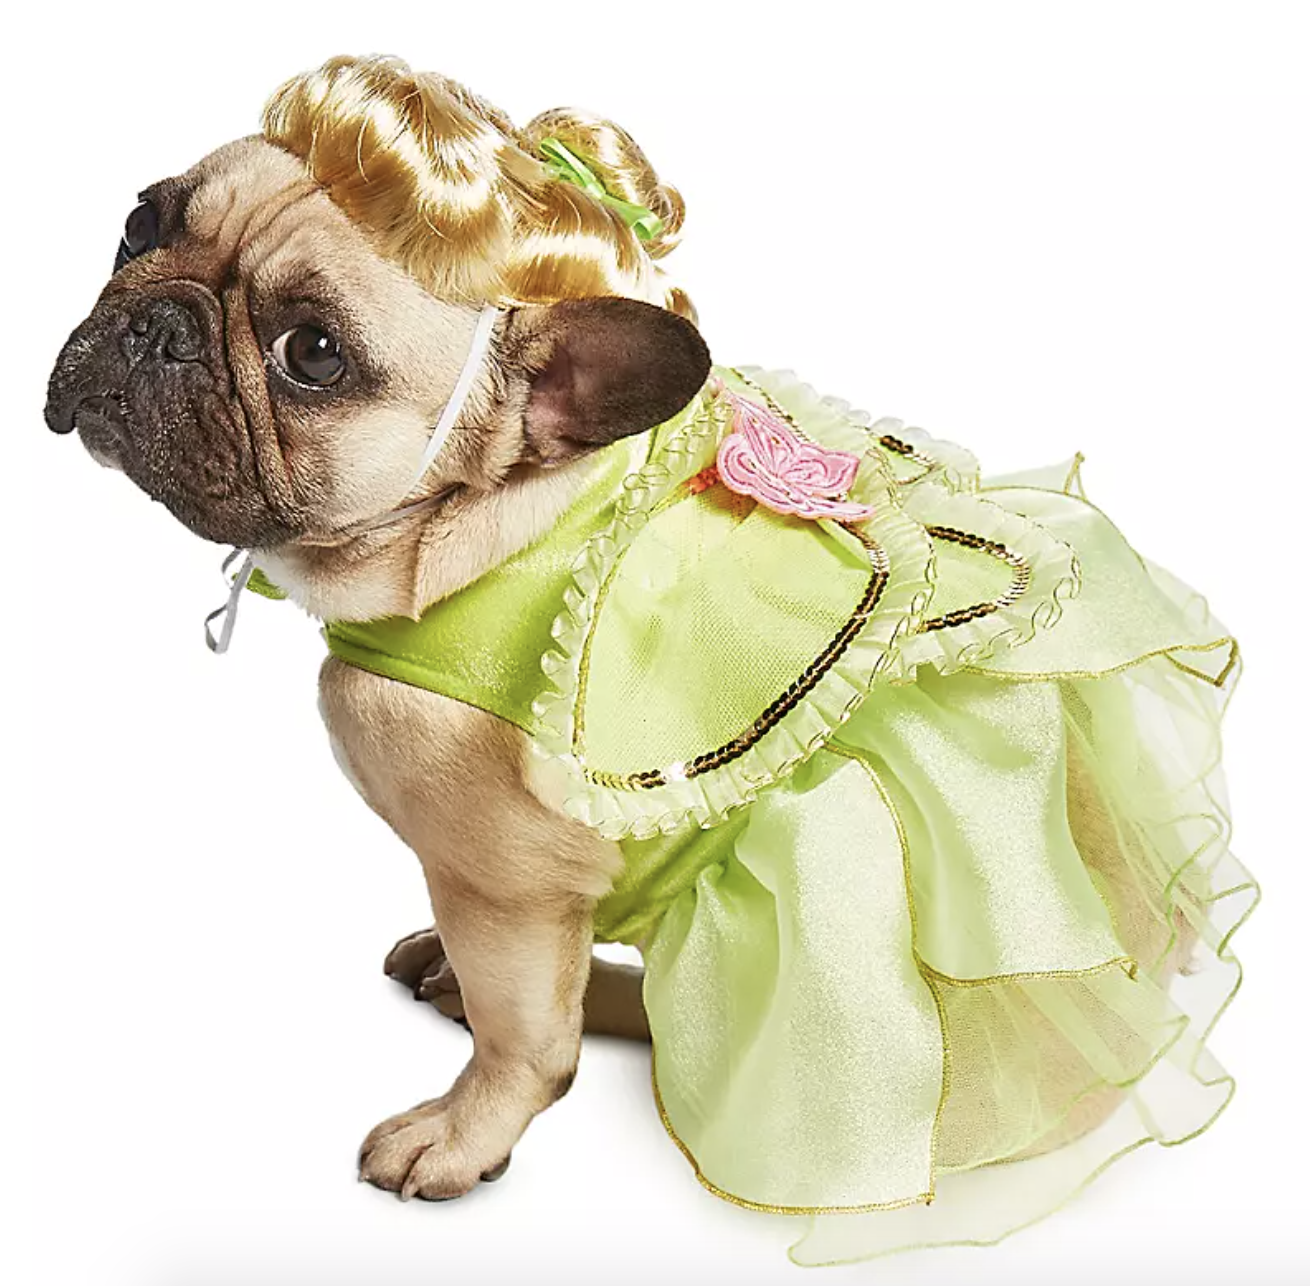 a pug in a green tinker bell dress with a blonde wig